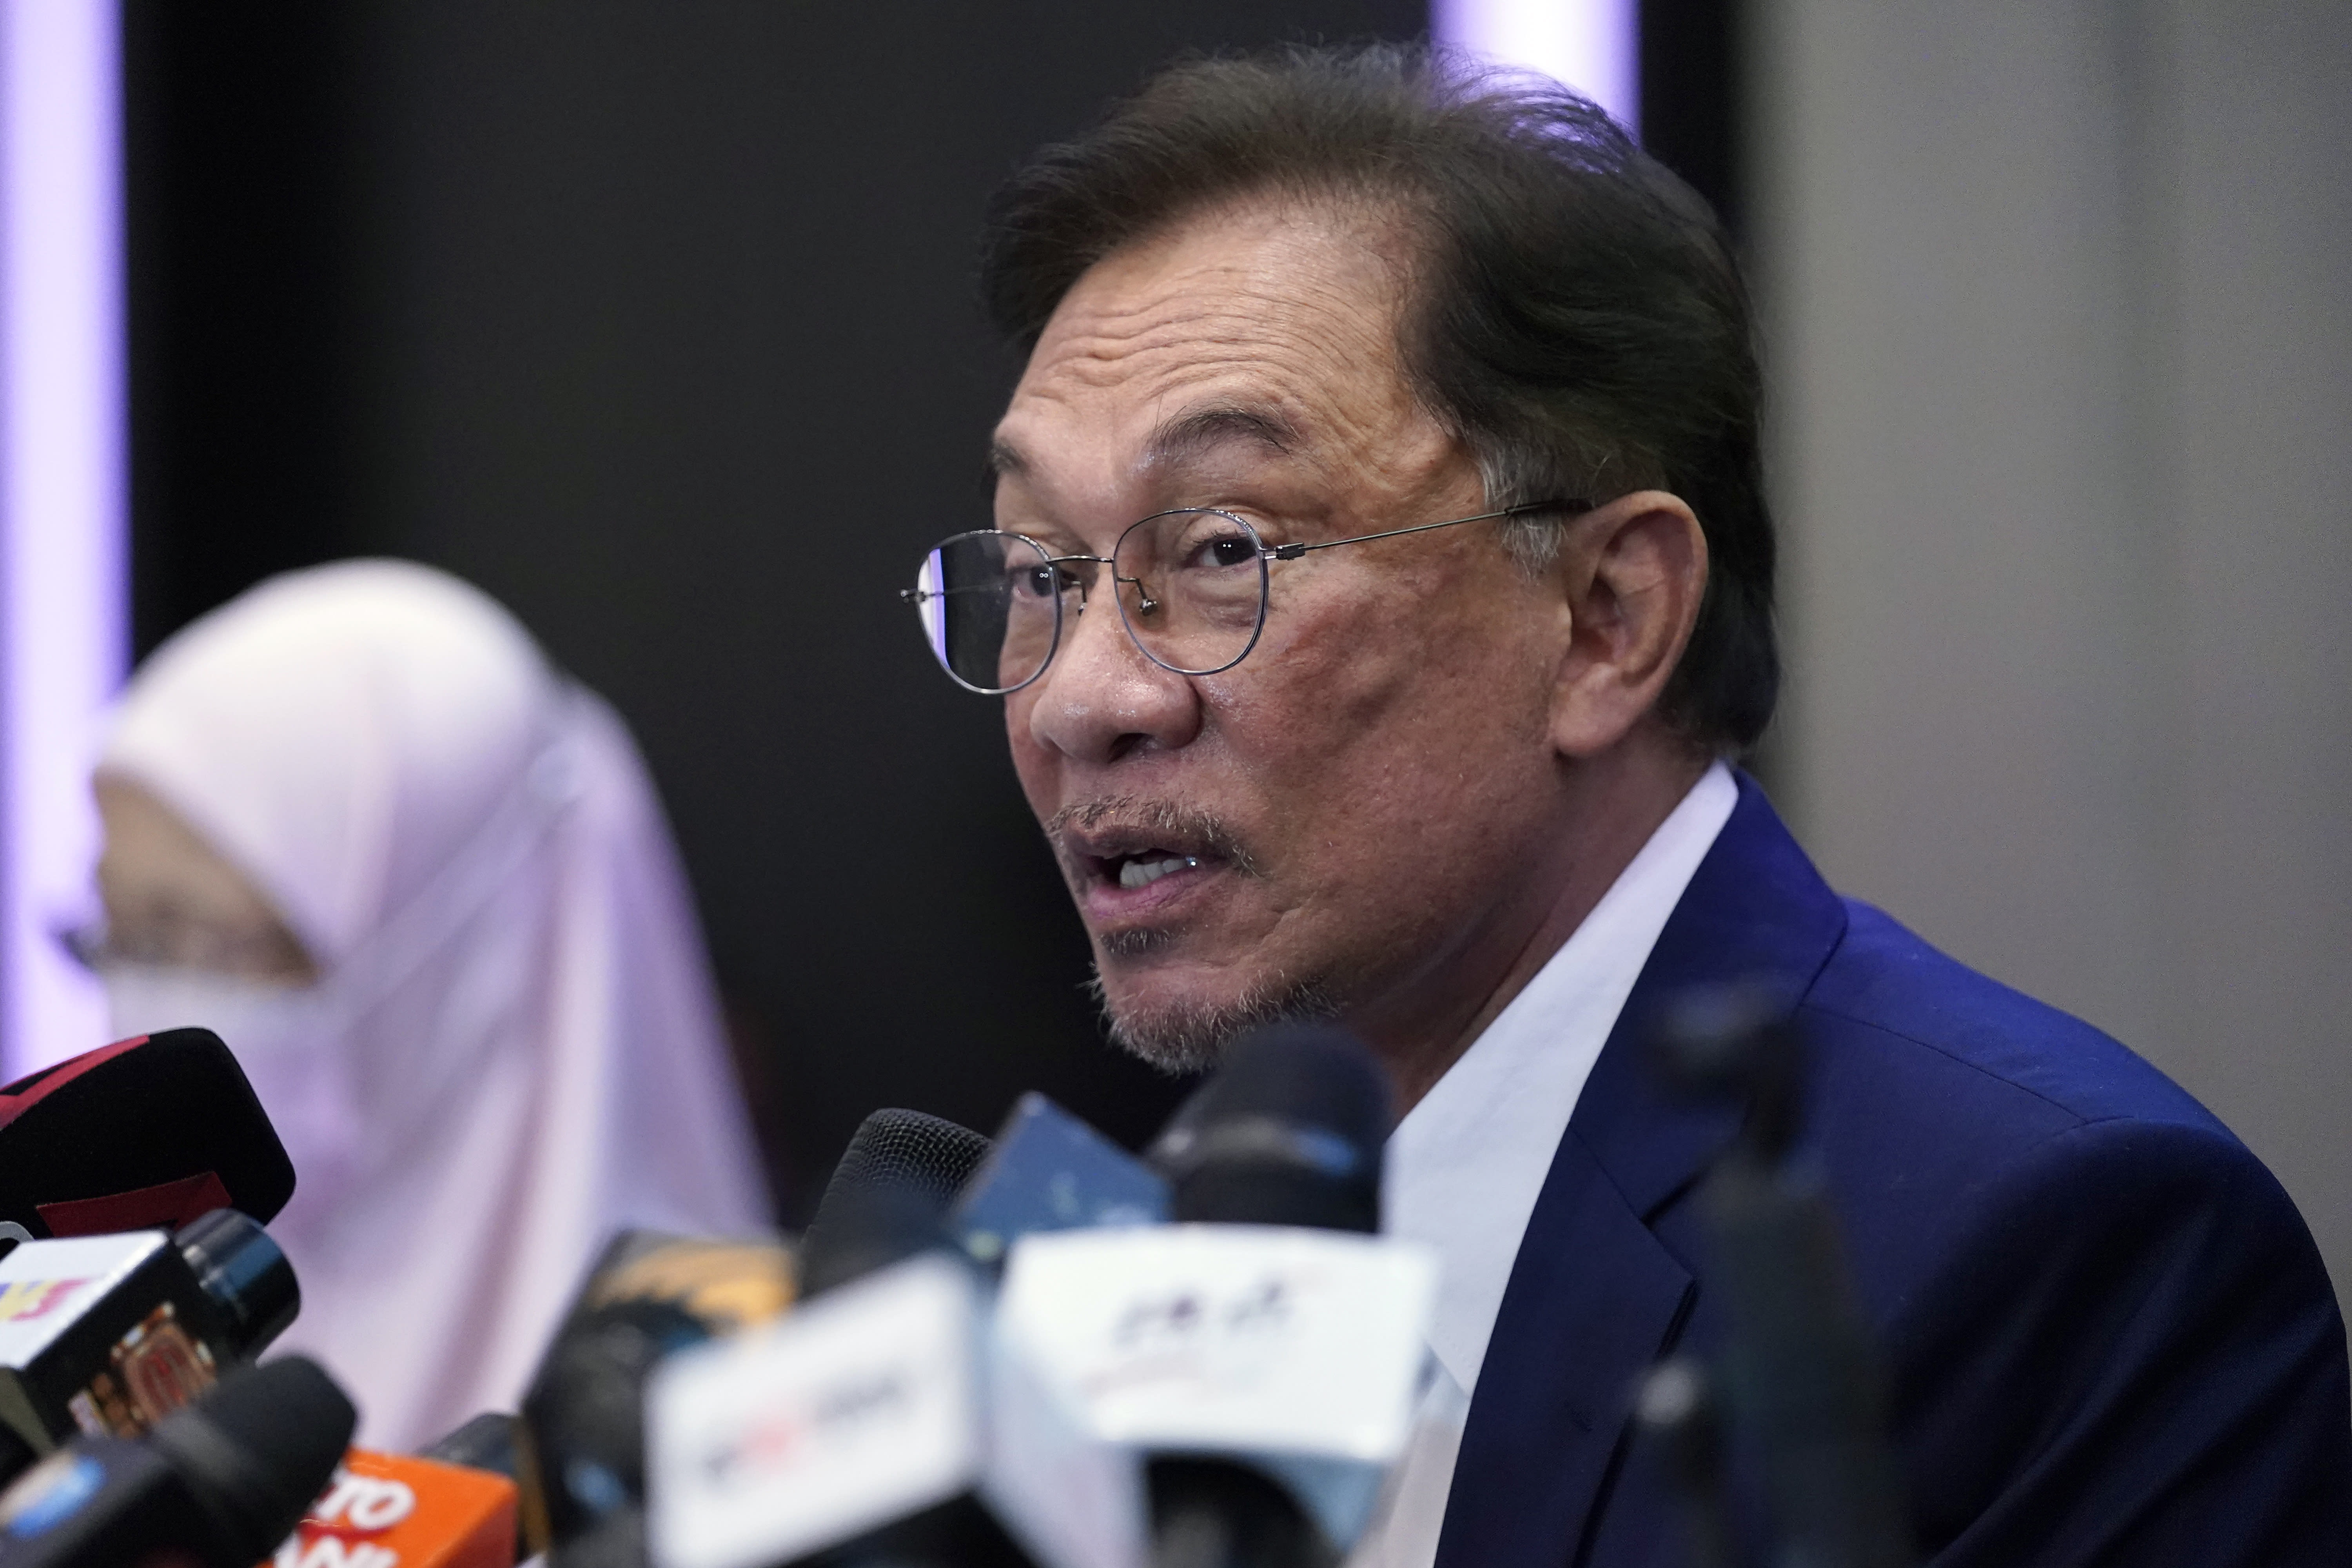 """Malaysia's opposition leader Anwar Ibrahim speaks during a press conference in Kuala Lumpur, Wednesday, Sept. 23, 2020. Anwar said he has secured a majority in parliament to form a new government that is """"strong, stable and formidable."""" (AP Photo/Vincent Thian)"""